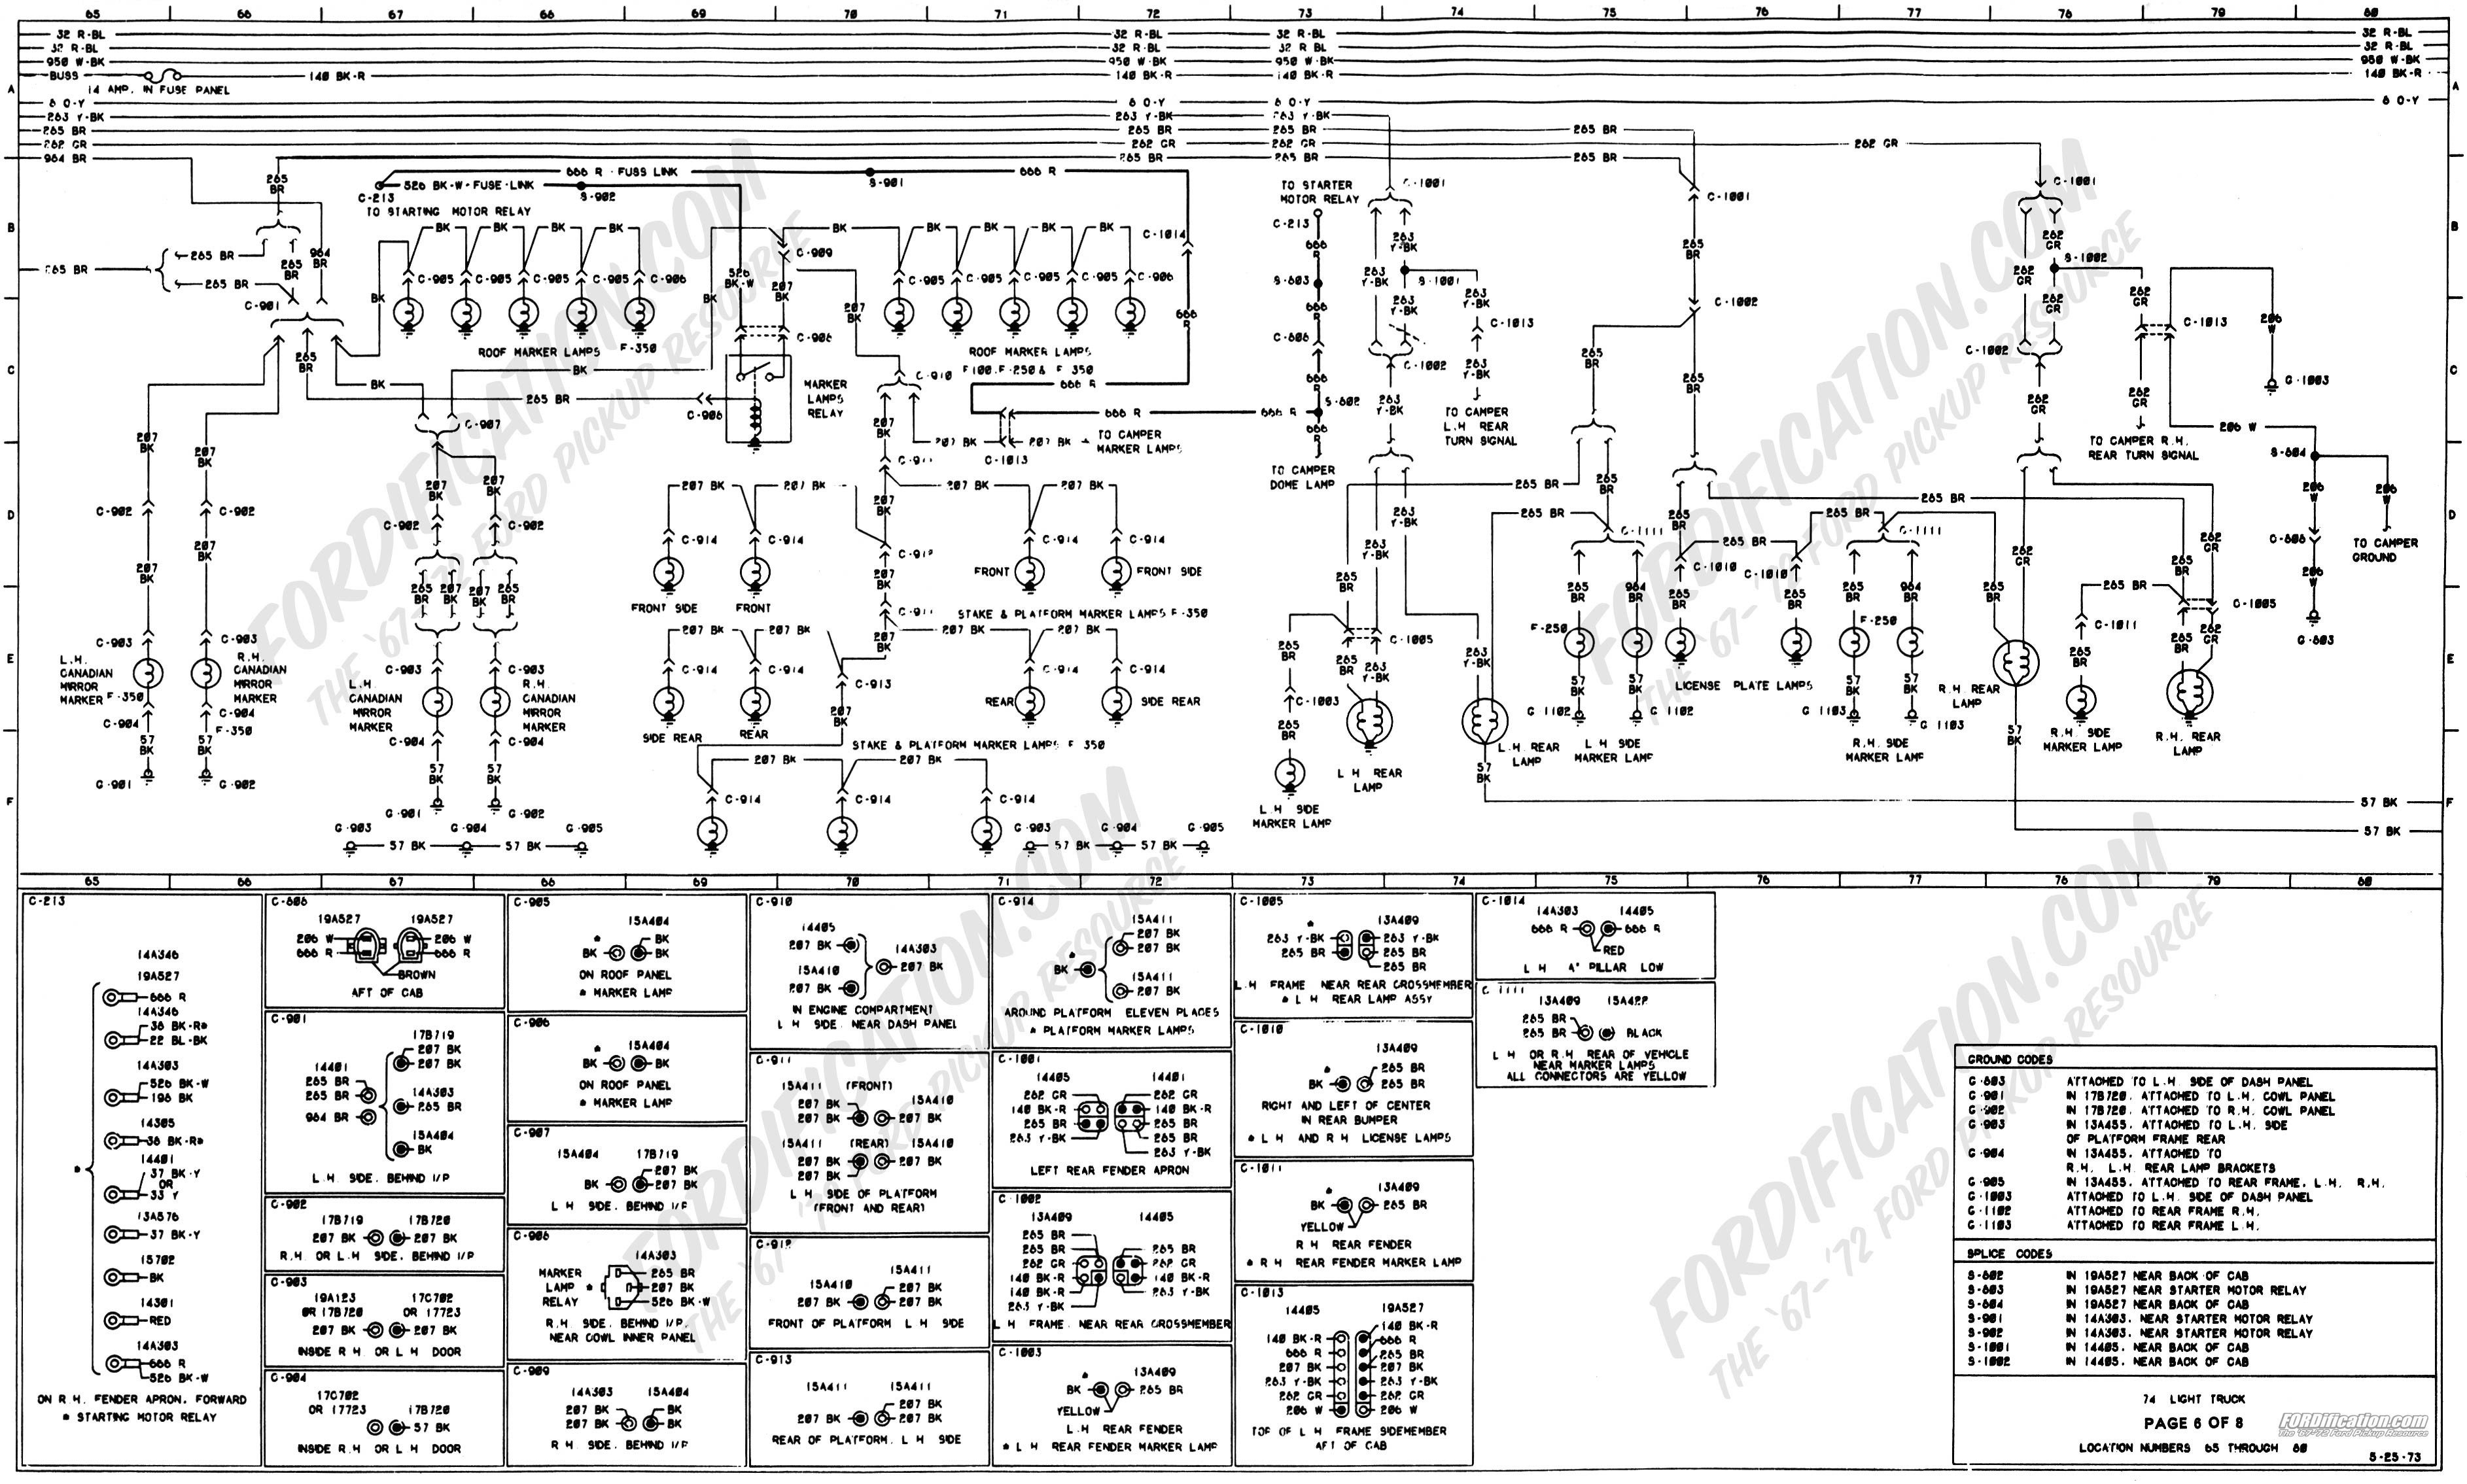 1977 ford ignition diagram wiring diagram expert 1979 ford bronco wiring diagram 1977 ford ignition diagram [ 3771 x 2269 Pixel ]